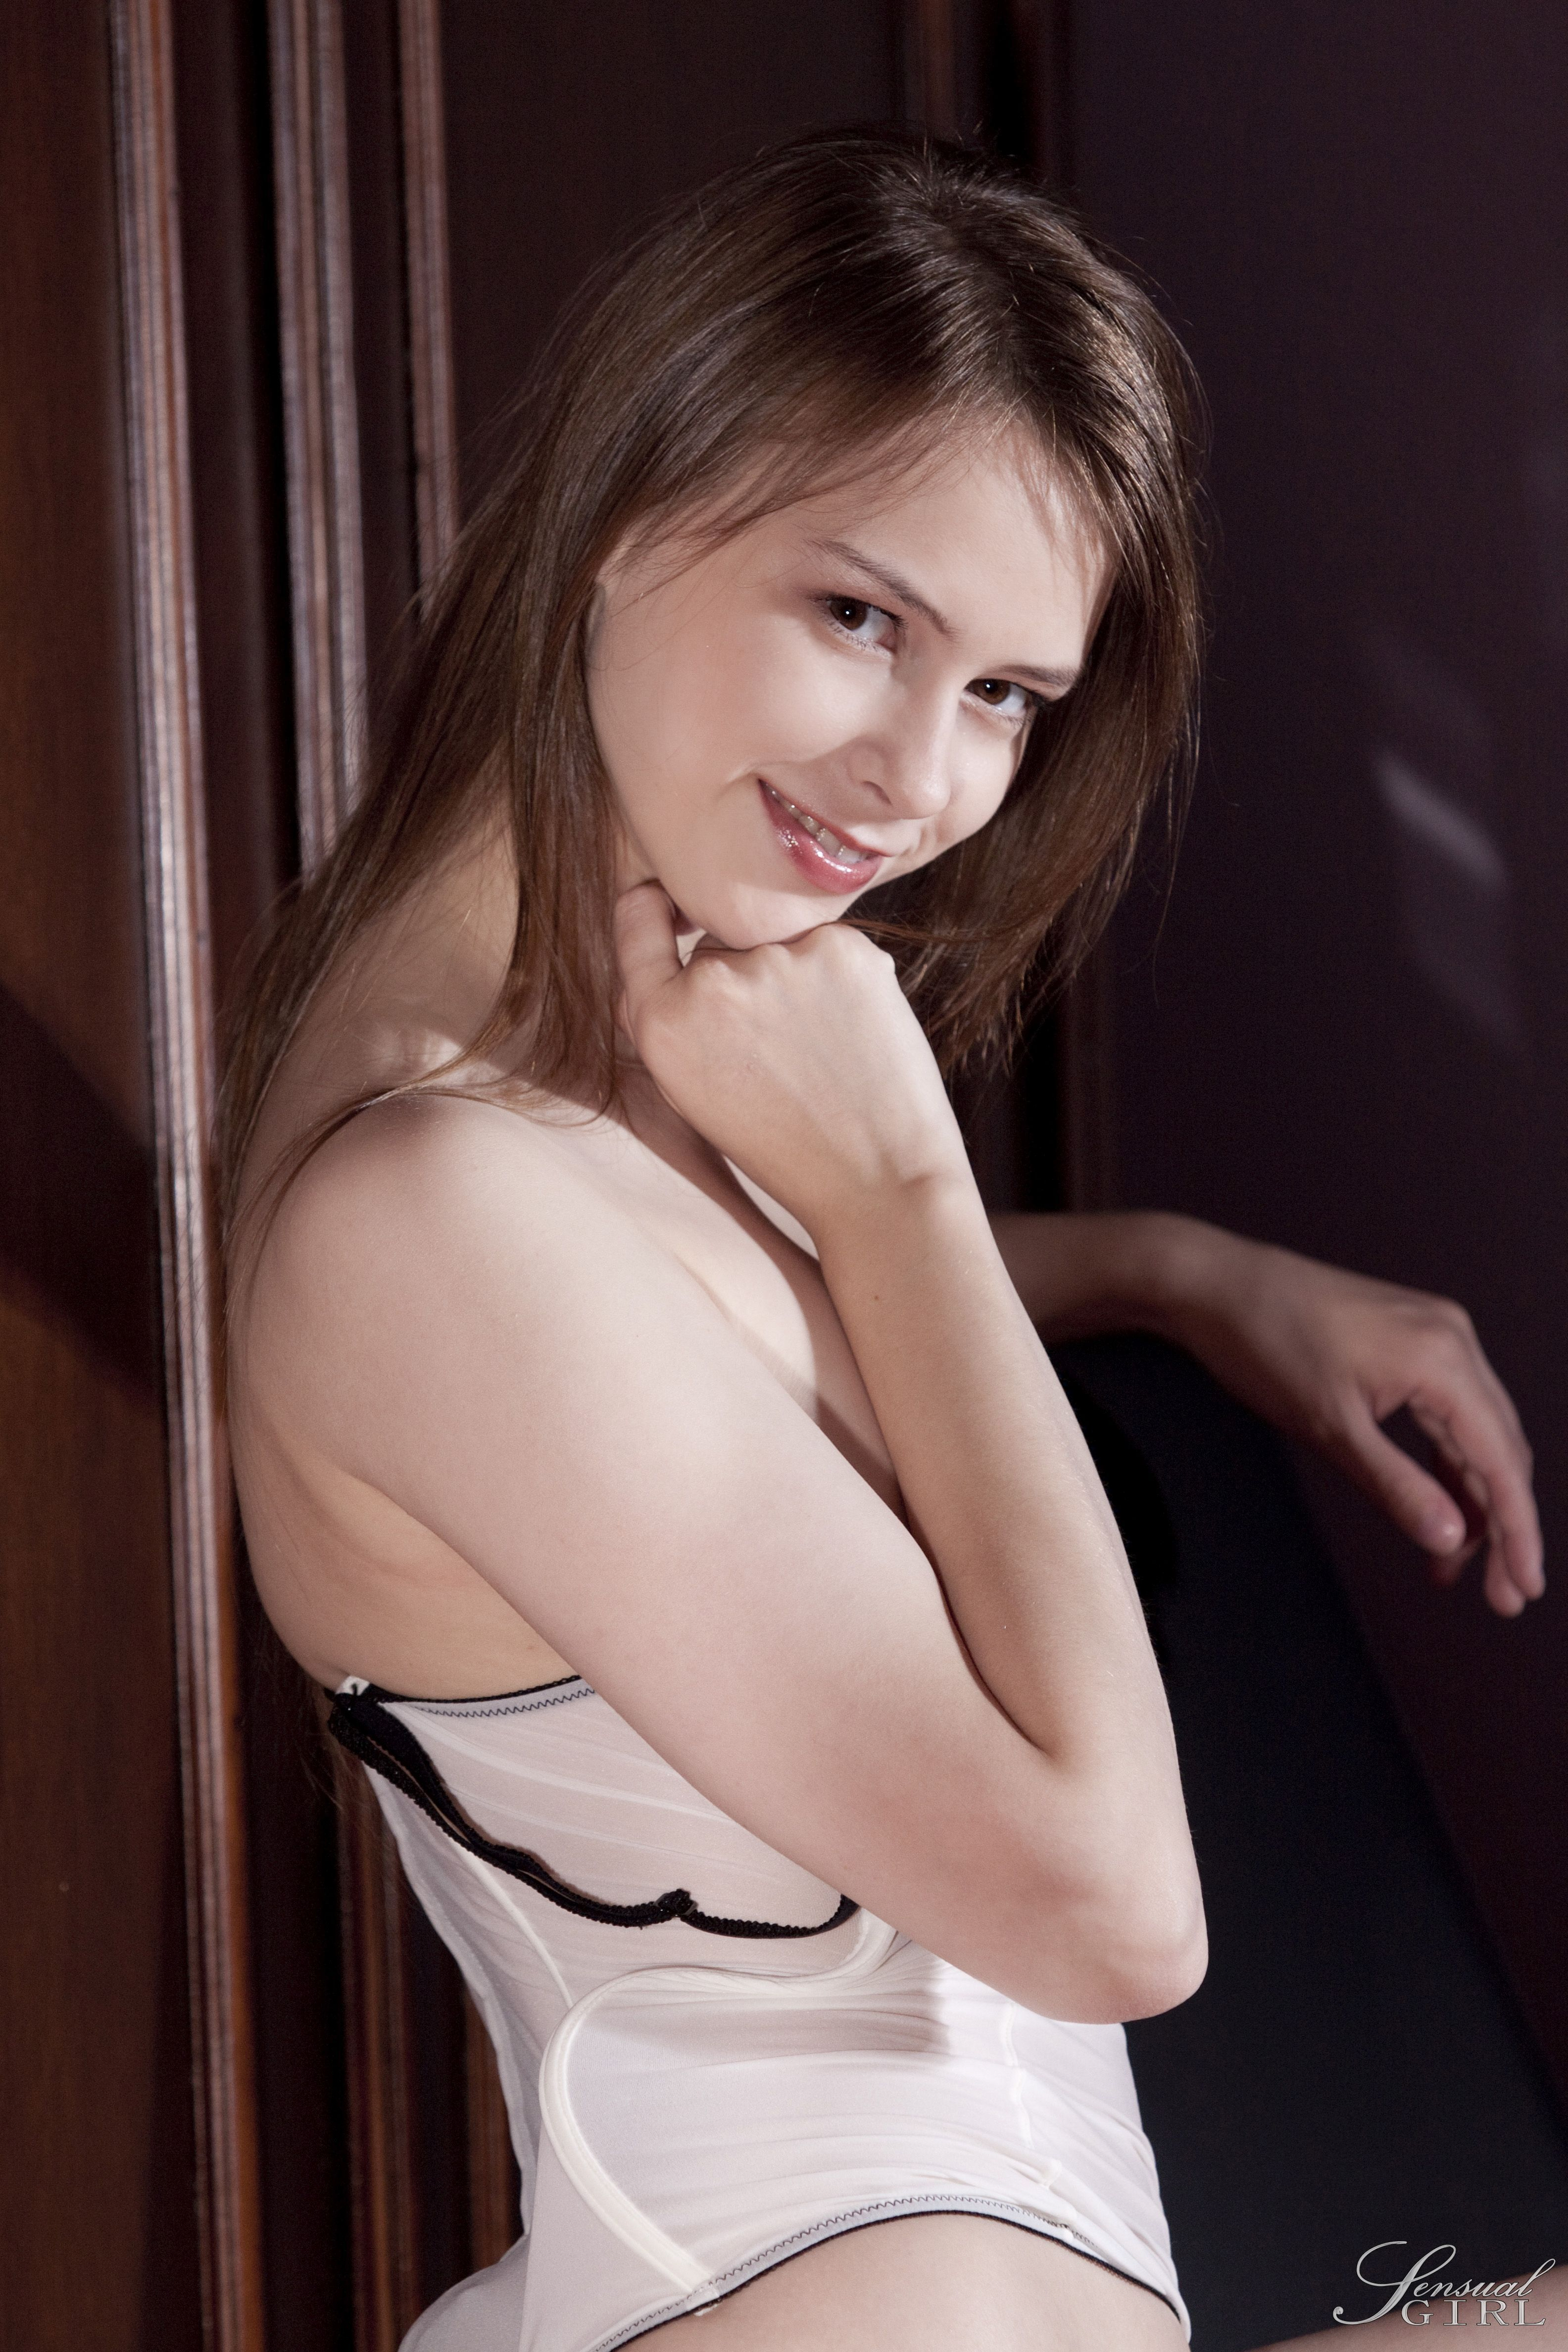 from sweet and innocent to hot and naughty, sensual beata undine